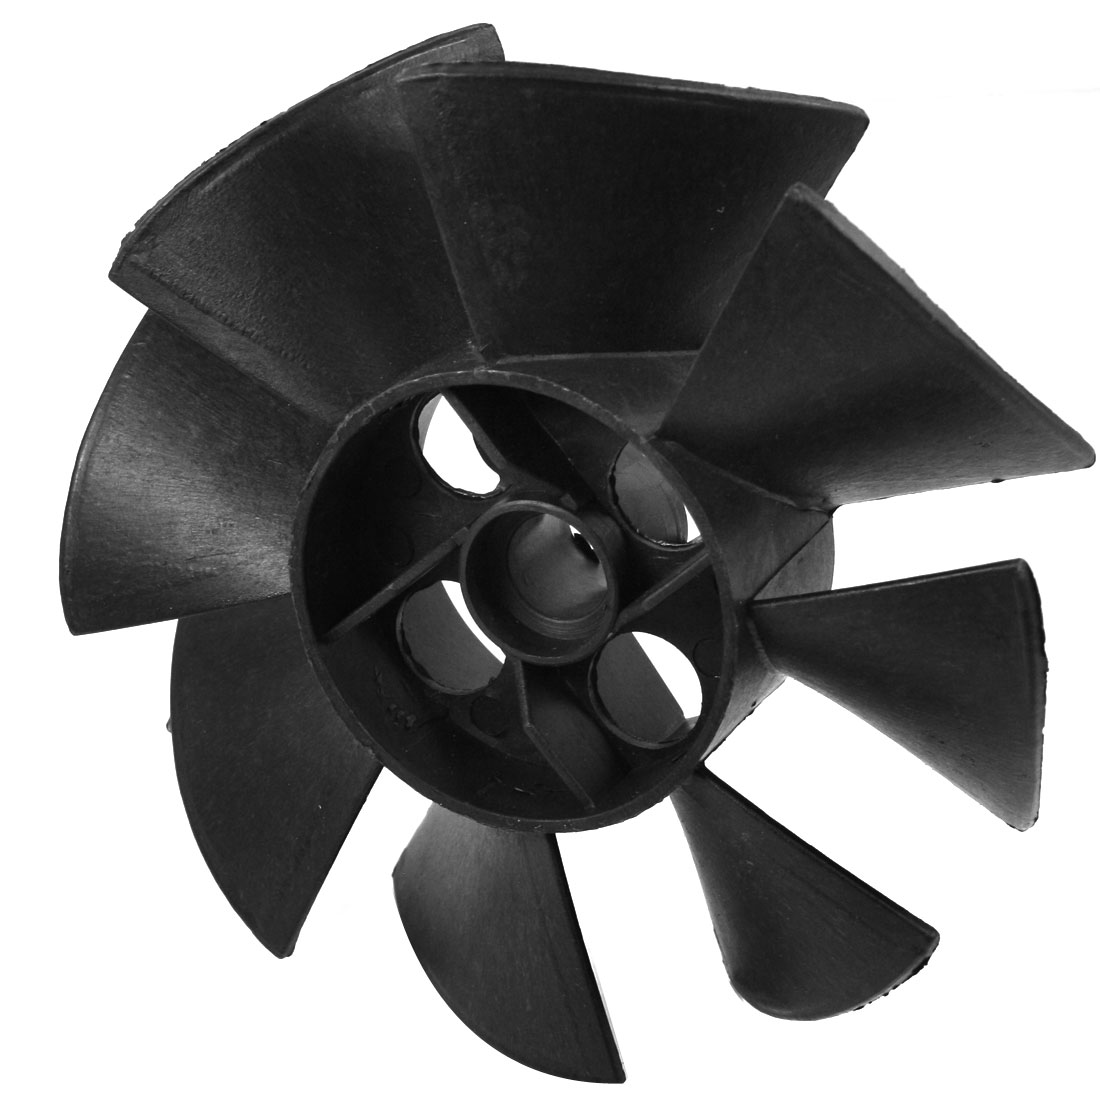 Machine Part Black Plastic 15mm Inner Diameter 8 Impeller Motor Fan Vane